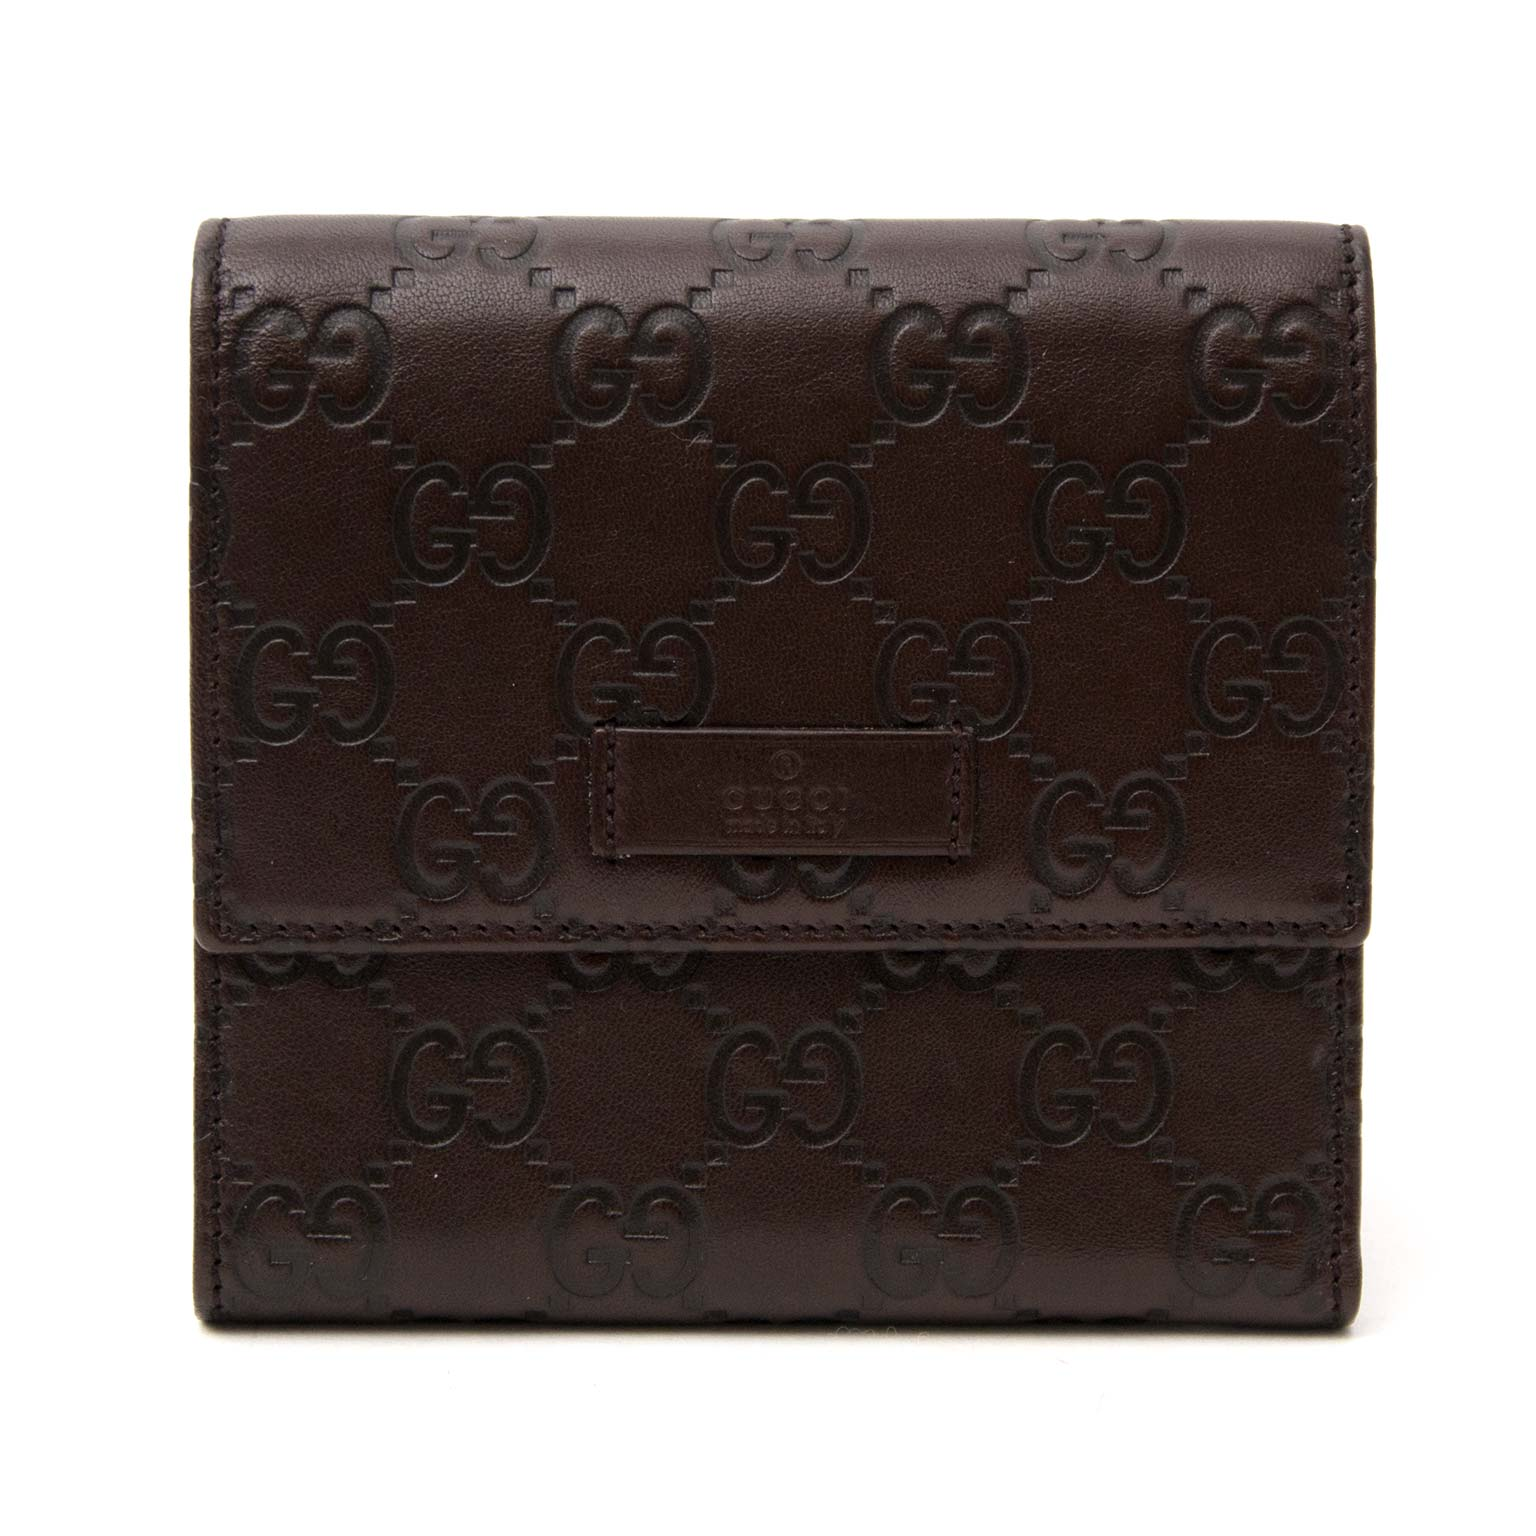 Are you interested in an authentic Gucci Black Ruffle Hem Wallet